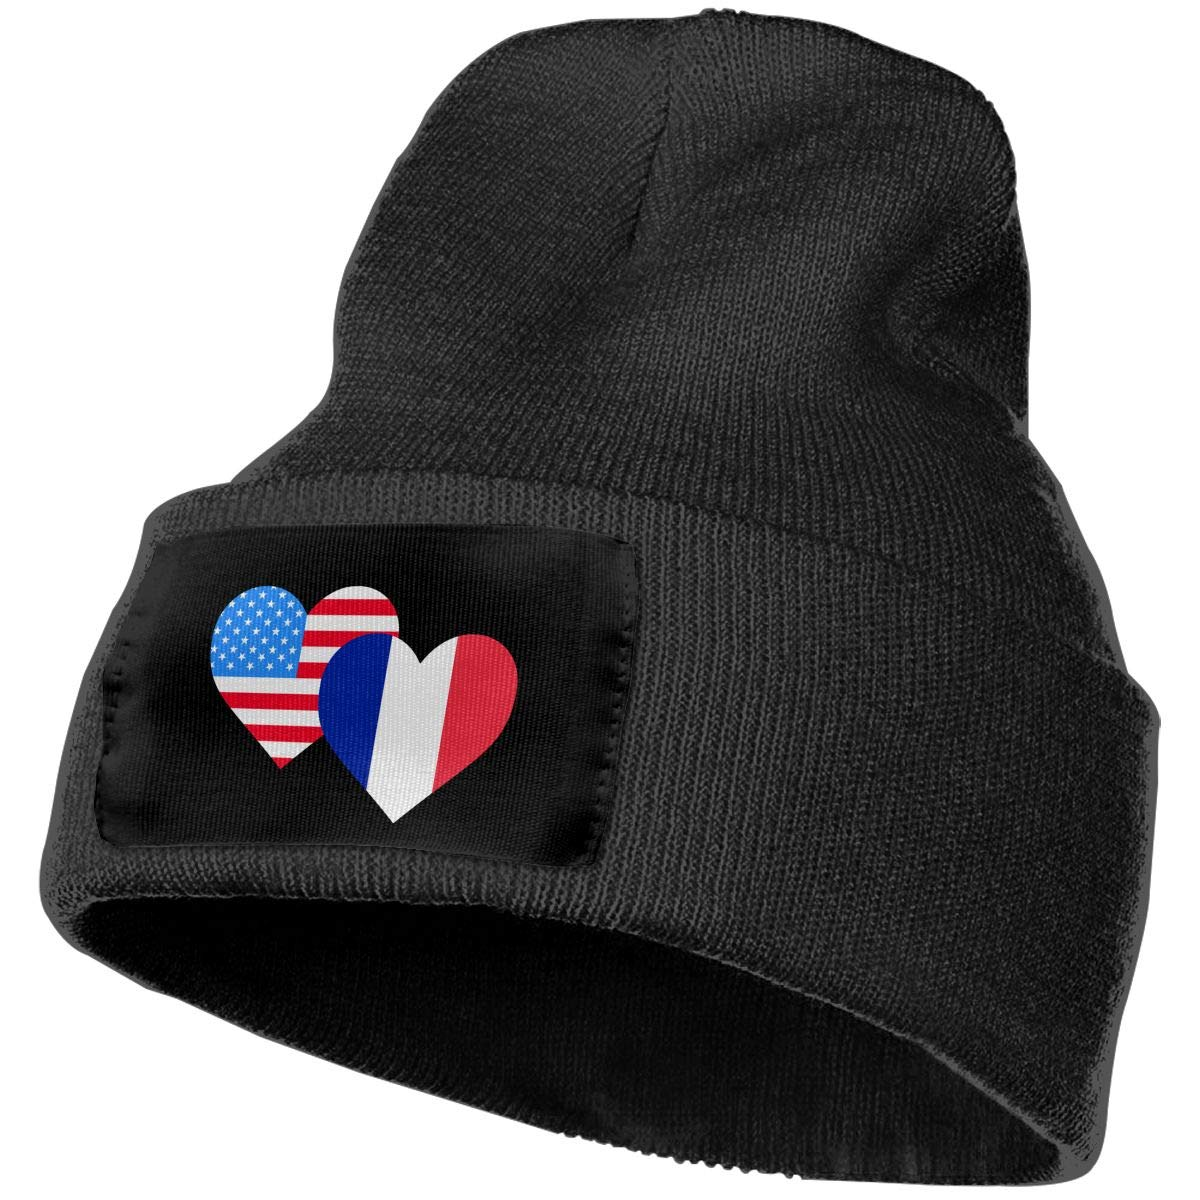 COLLJL-8 Unisex American France Heart Flag-1 Outdoor Stretch Knit Beanies Hat Soft Winter Knit Caps